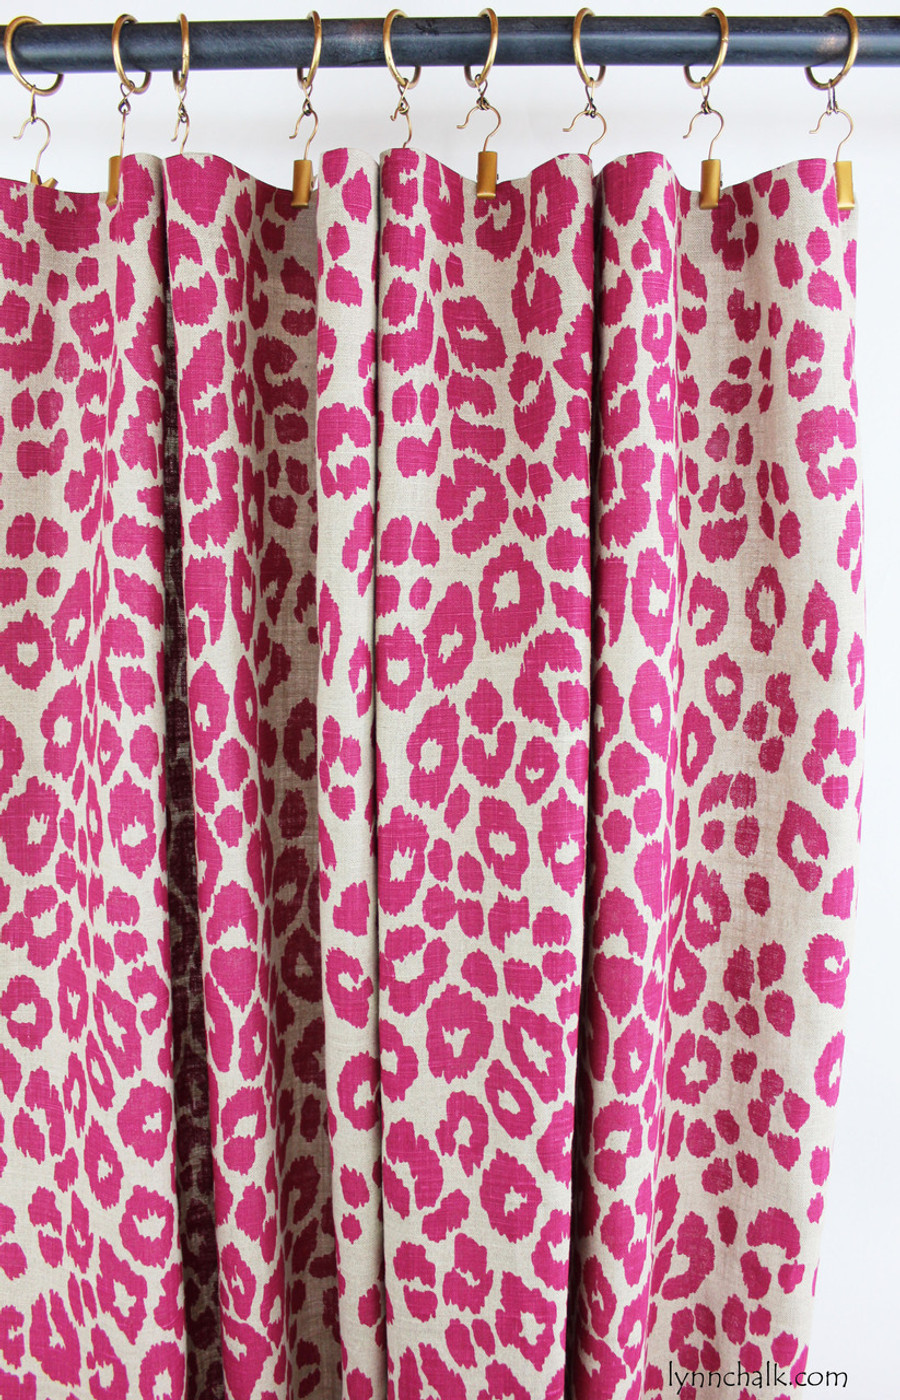 Custom Flat Panels by Lynn Chalk in Schumacher Iconic Leopard Fuchsia/Natural